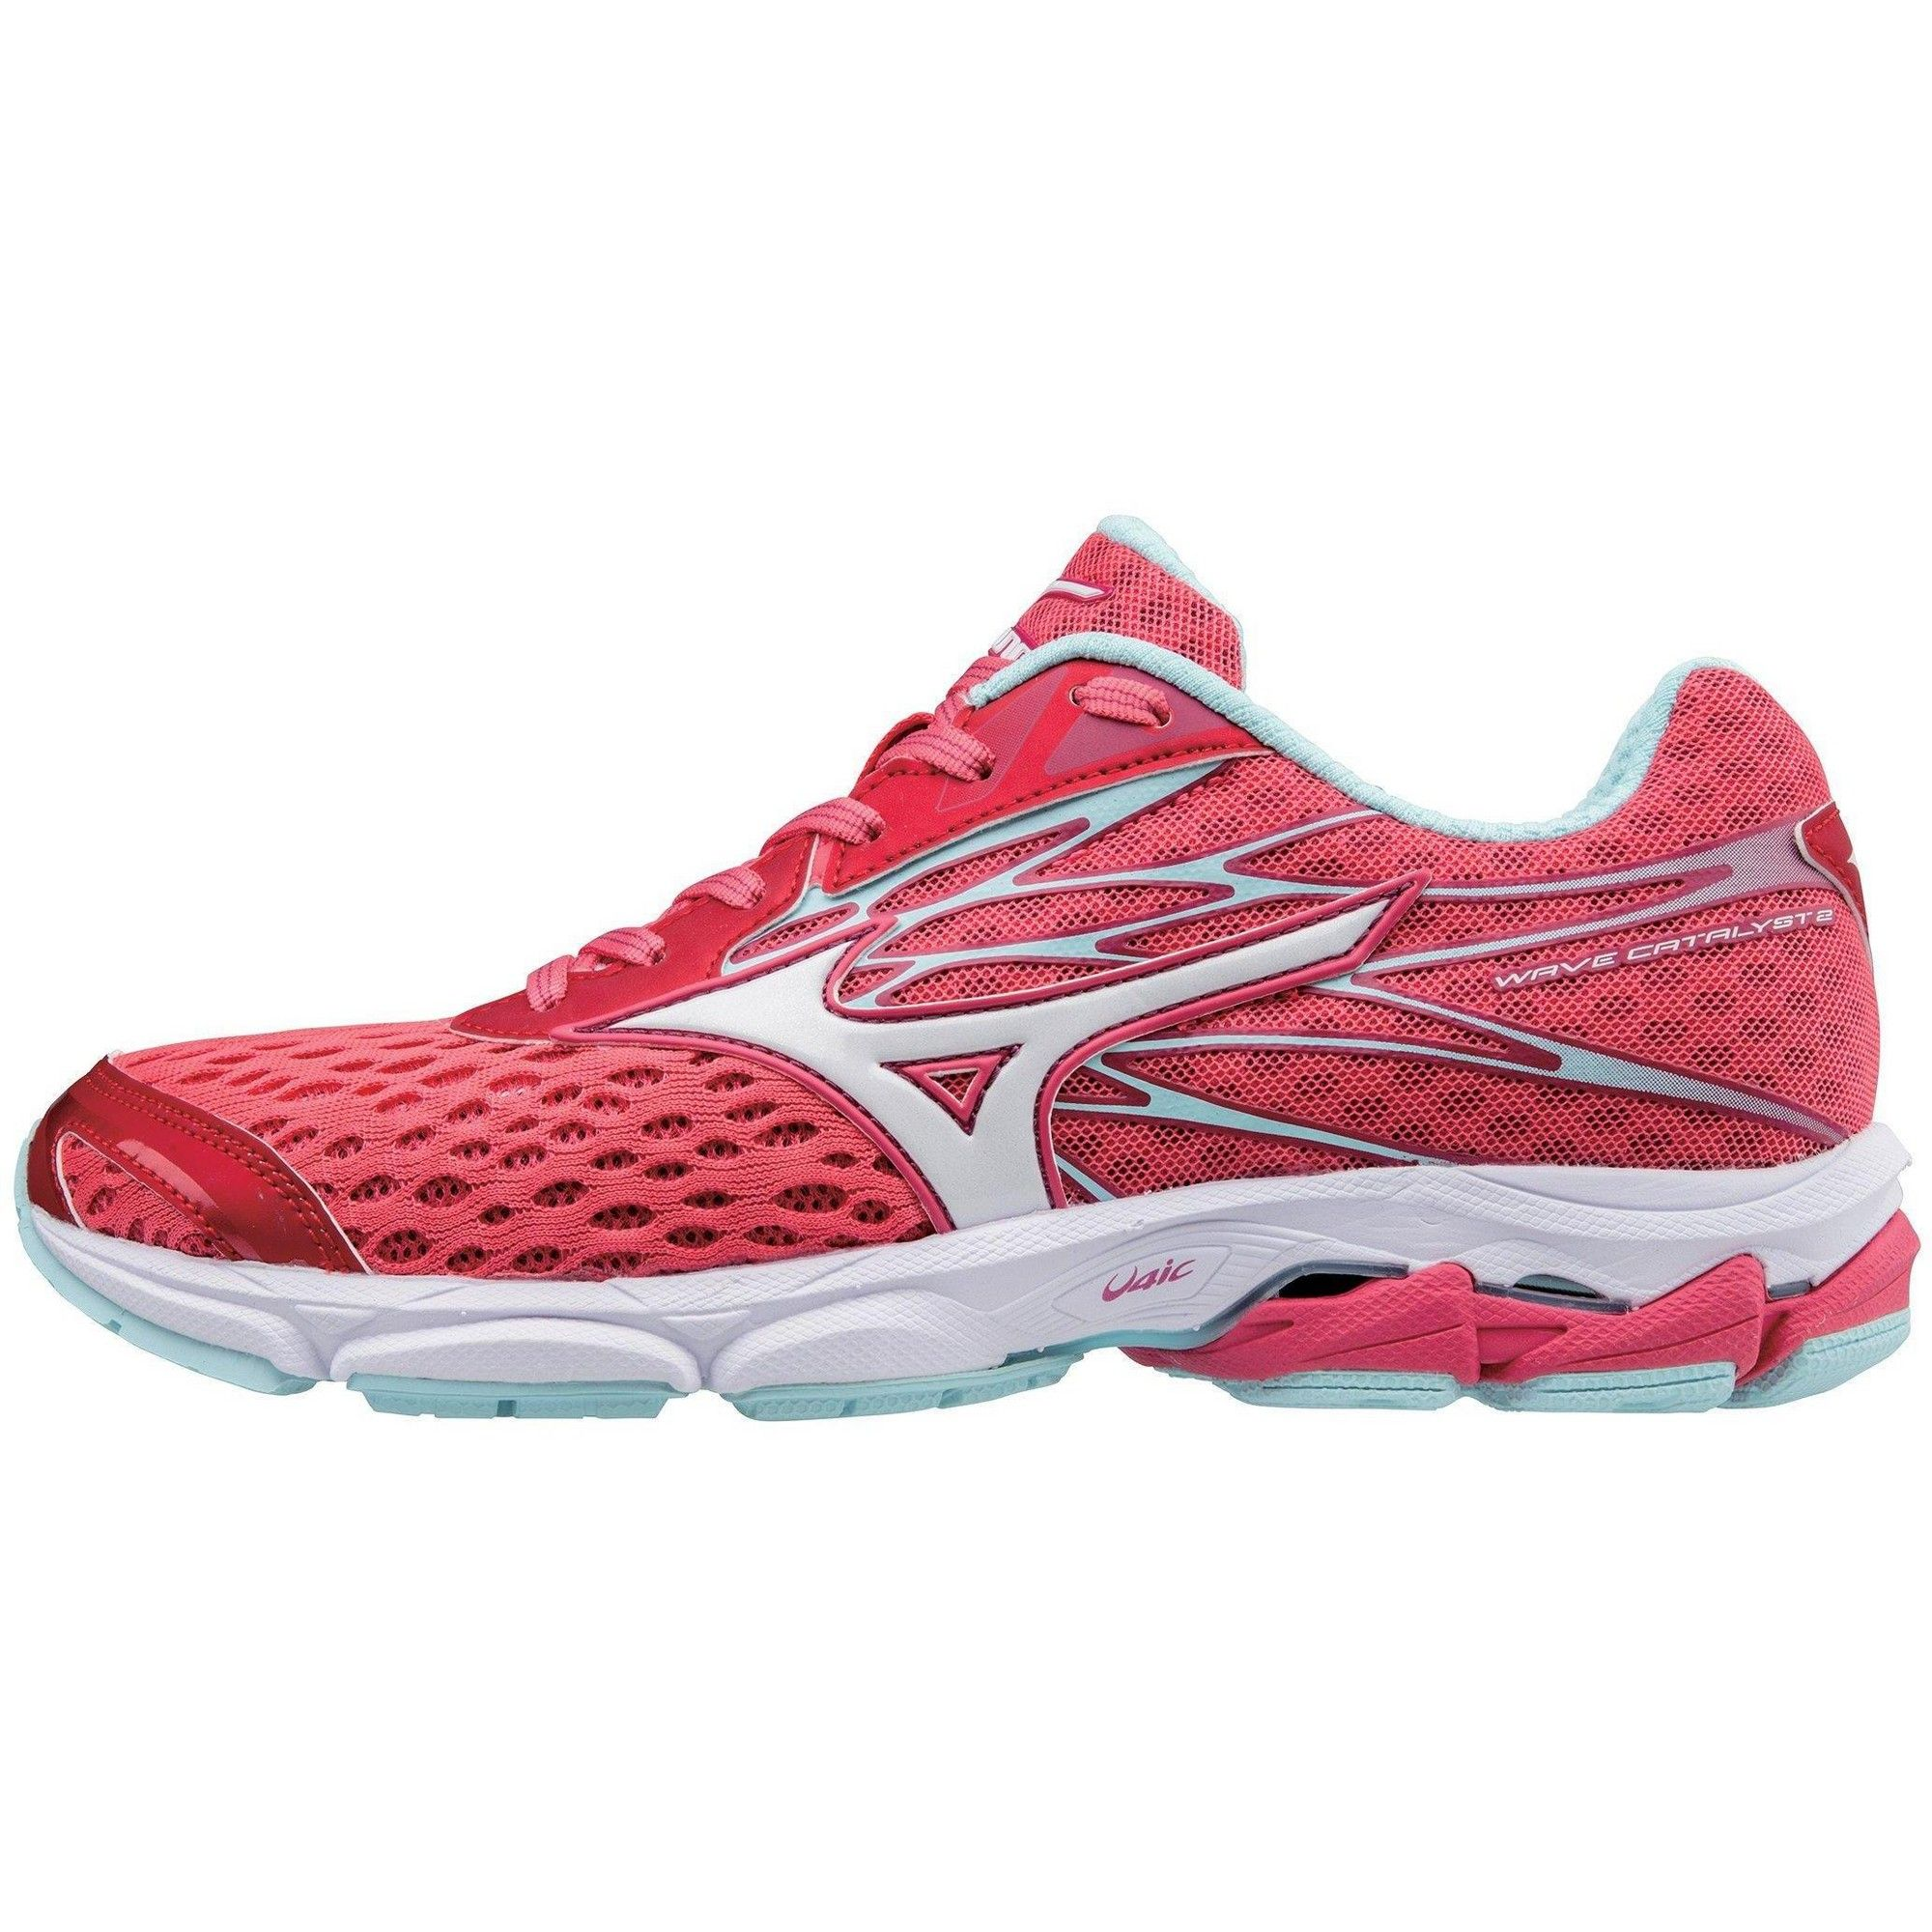 mizuno womens running shoes size 9.5 shoe